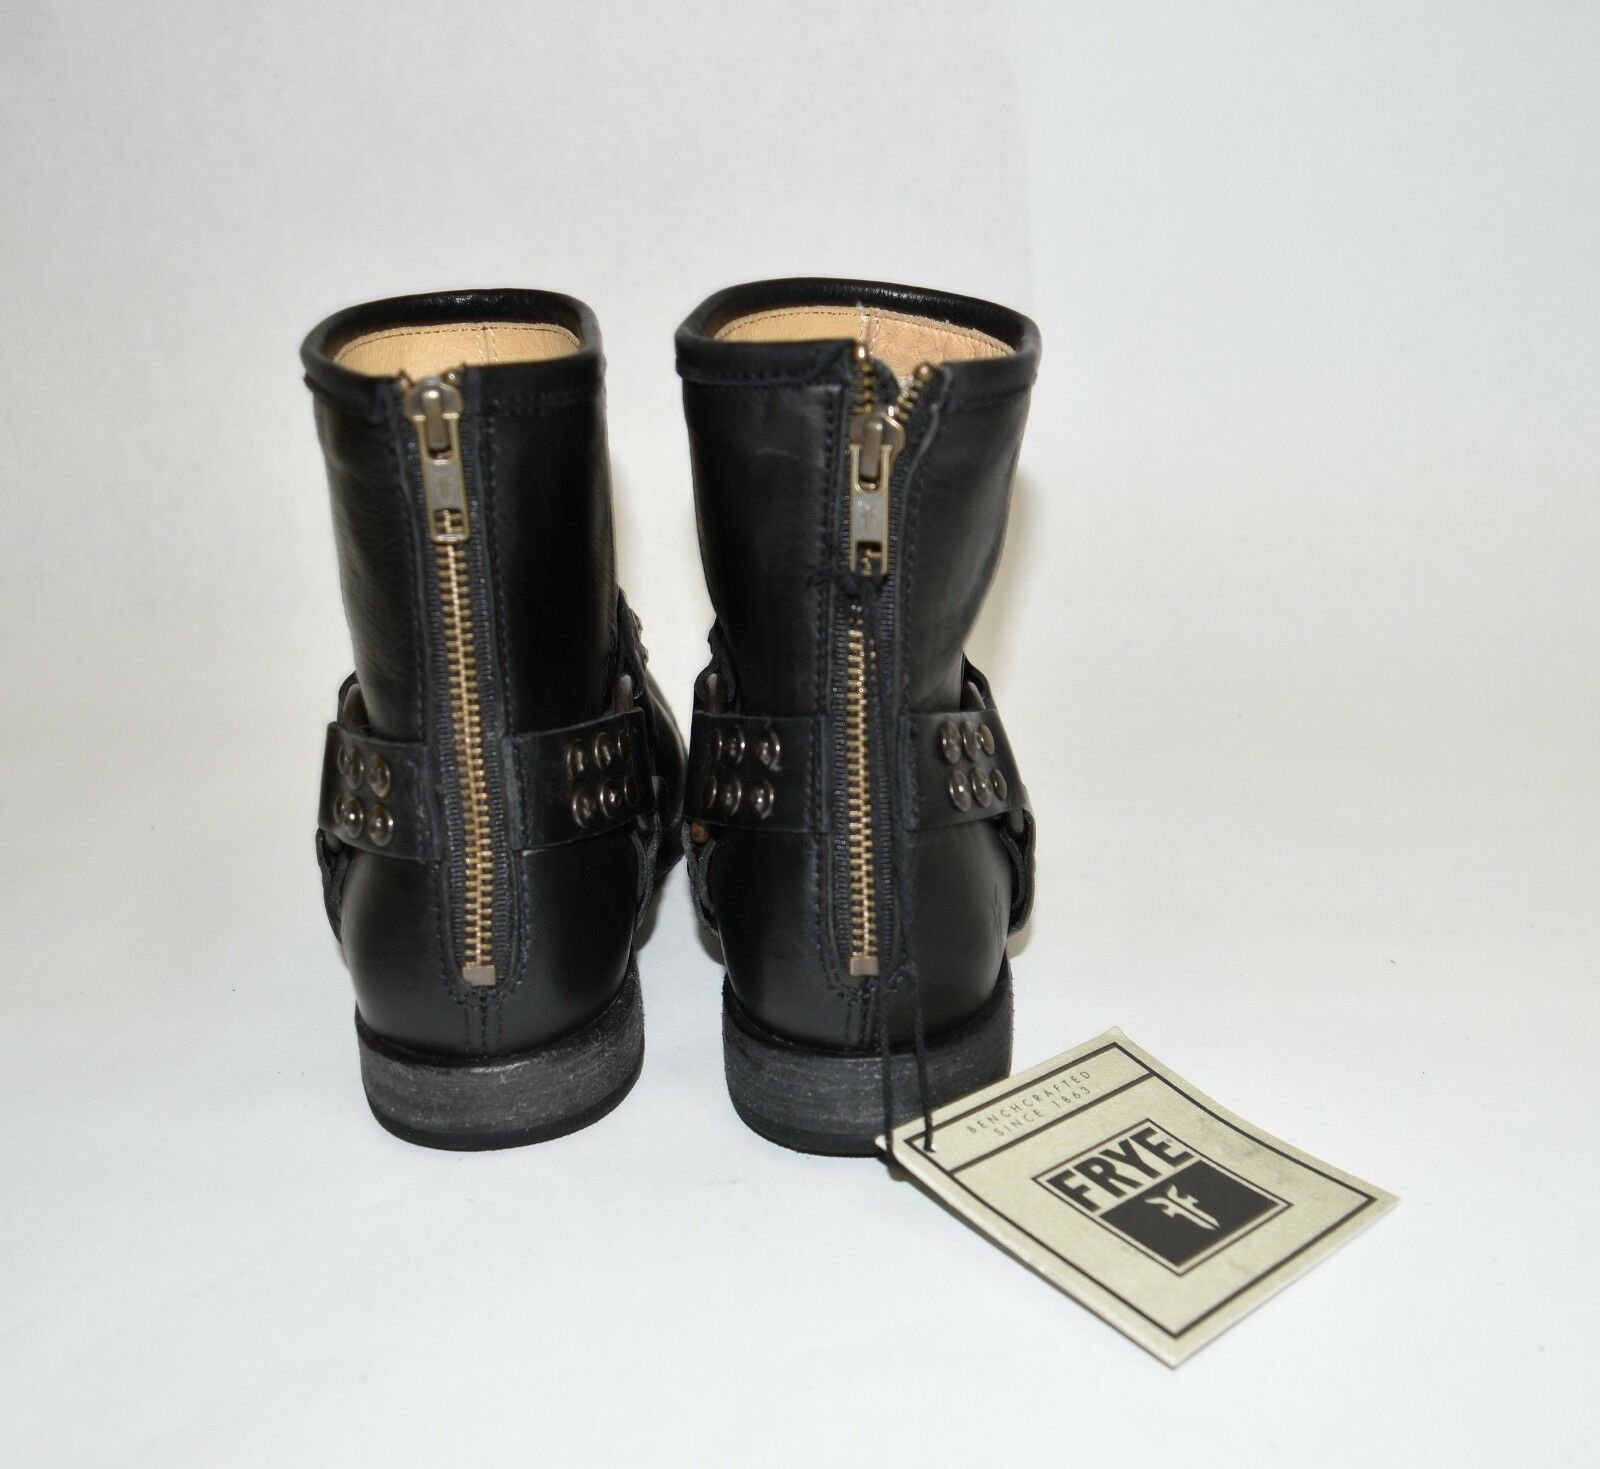 New New New  Frye 'Phillip' Studded Harness Bootie Black Leather Size 7 3476491 T36 18038c